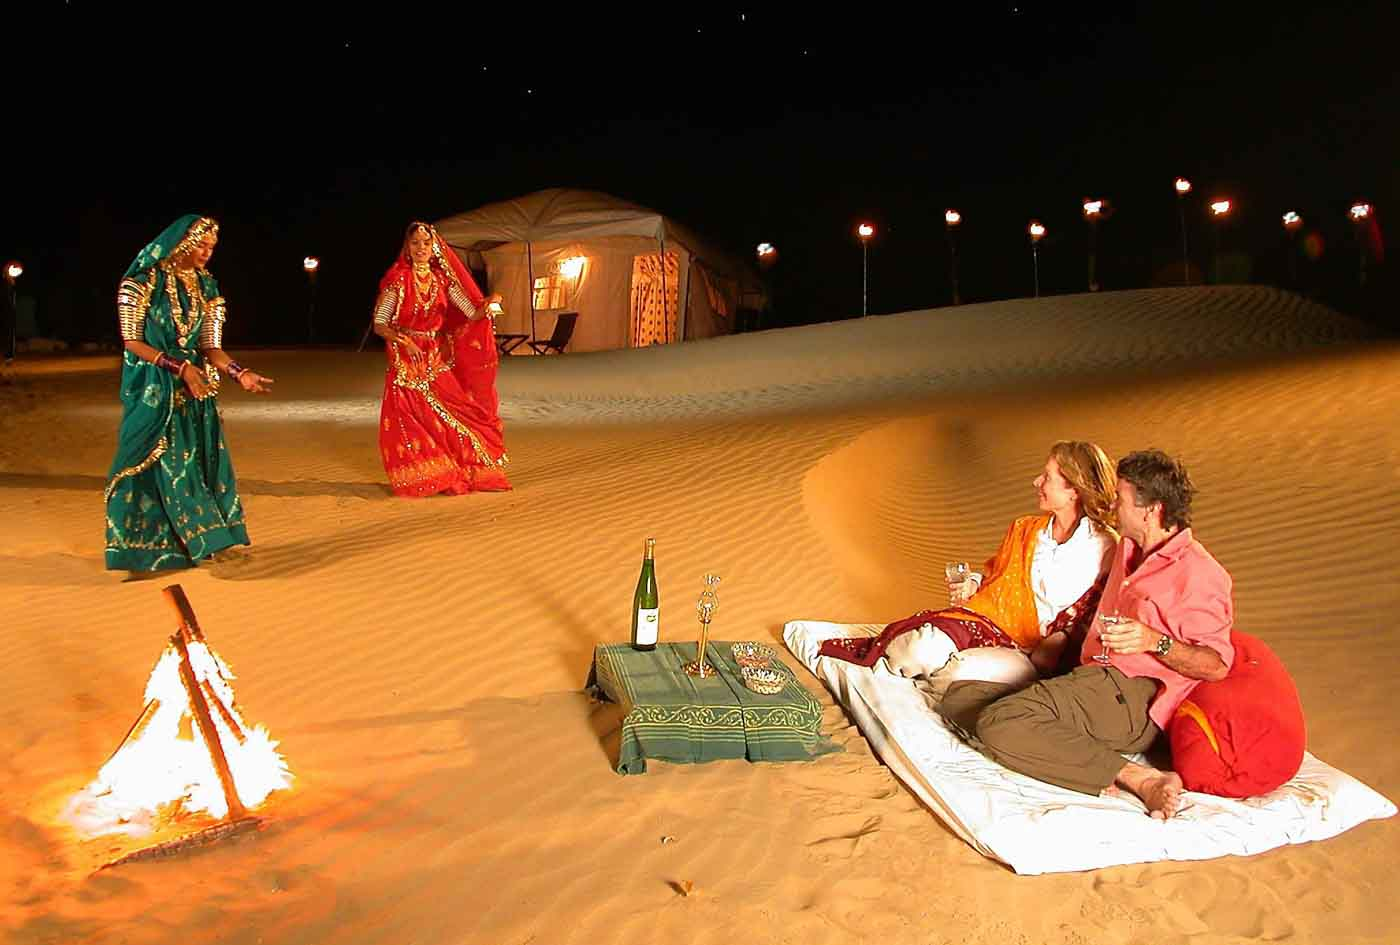 Rajasthan Tourism Logo Rajasthan Has Emerged as The